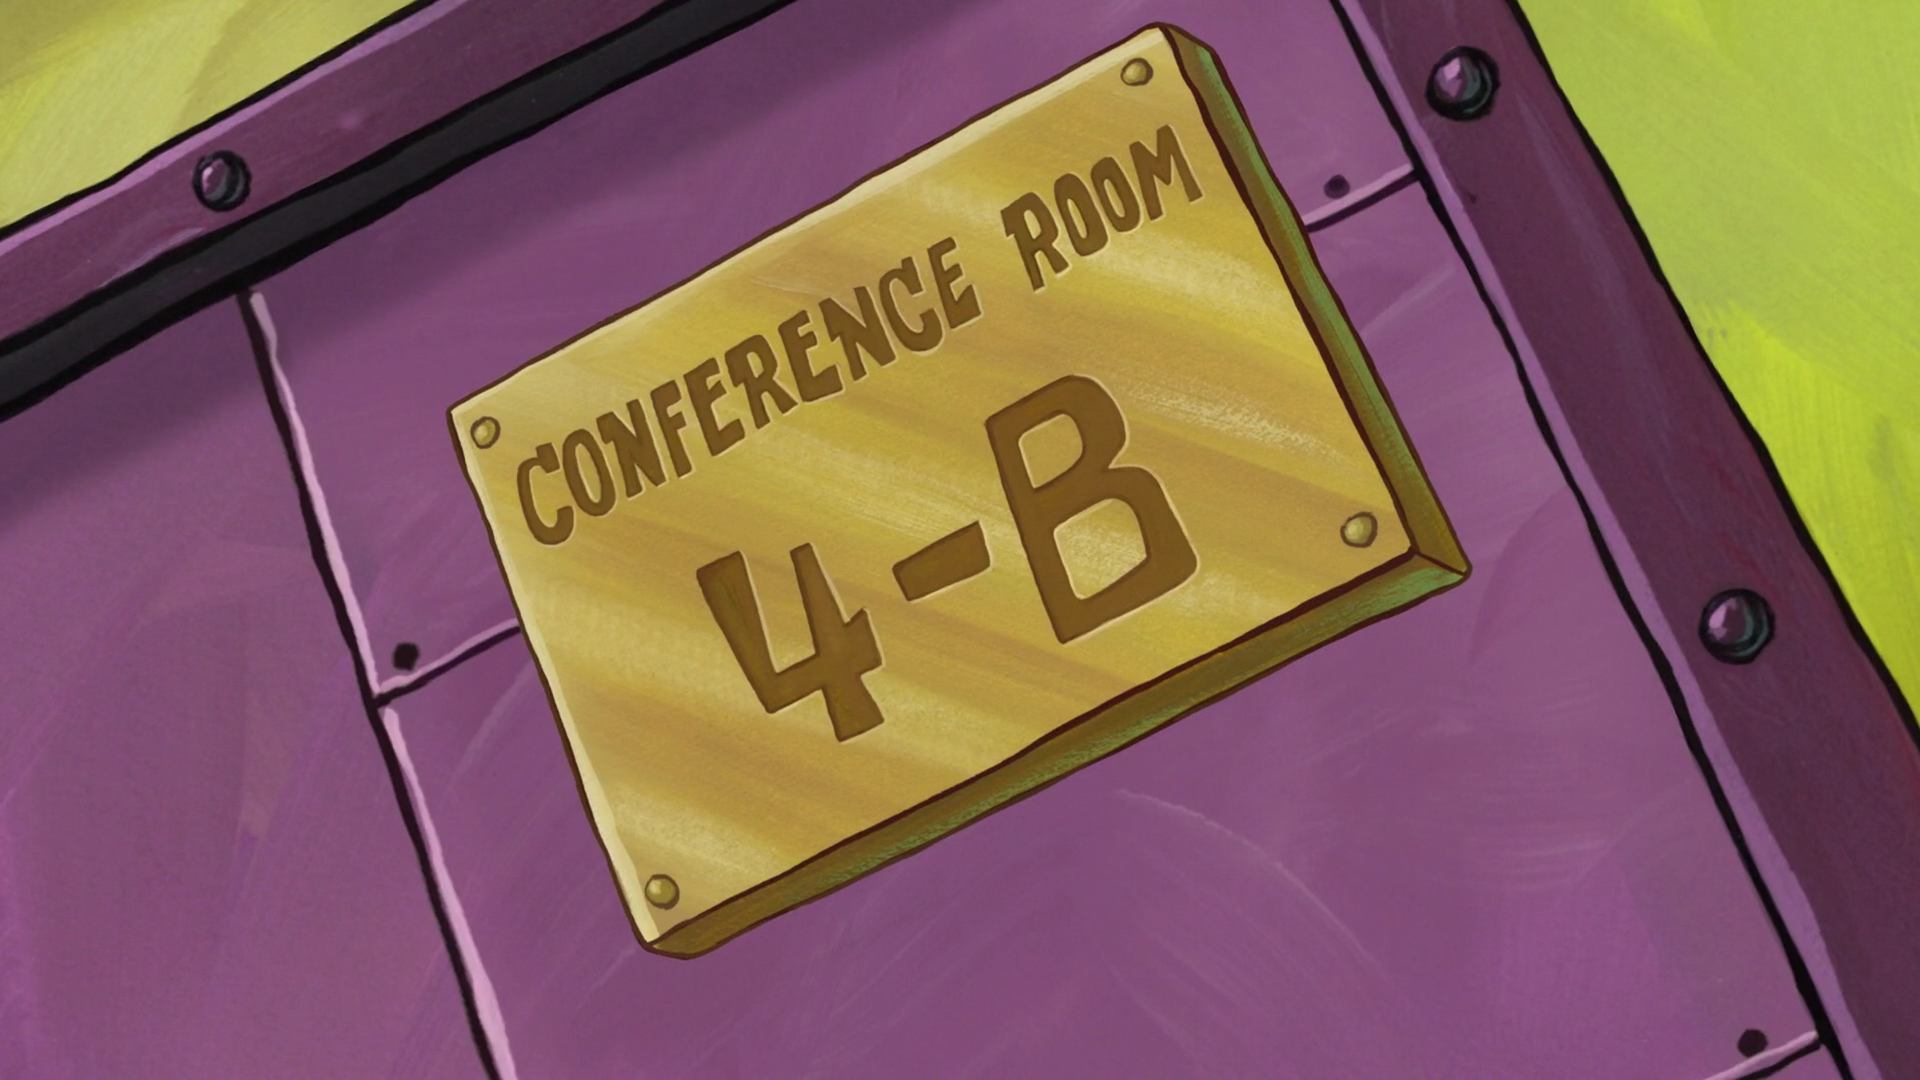 Conference Room 4-B